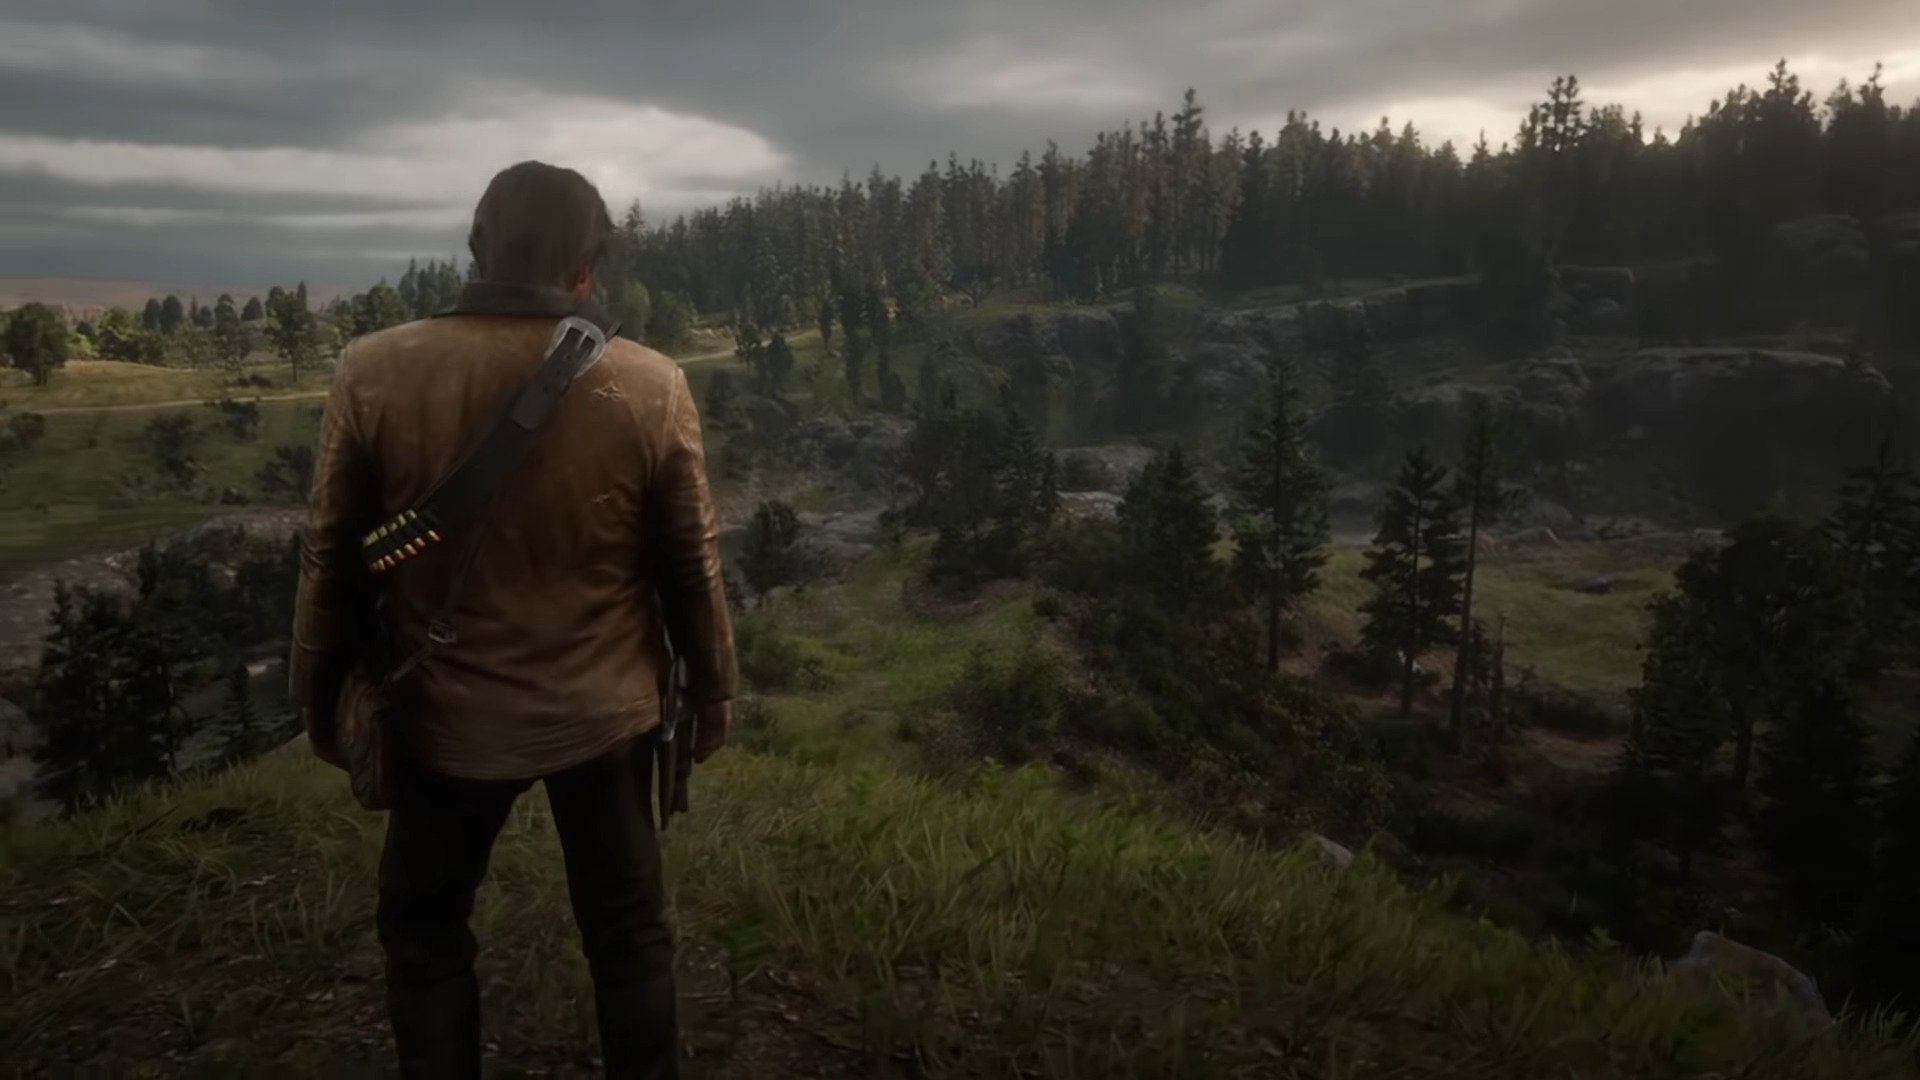 Red Dead Redemption 2: A Guide To The Best Ways To Get Perfect Pelts Without All The Fuss